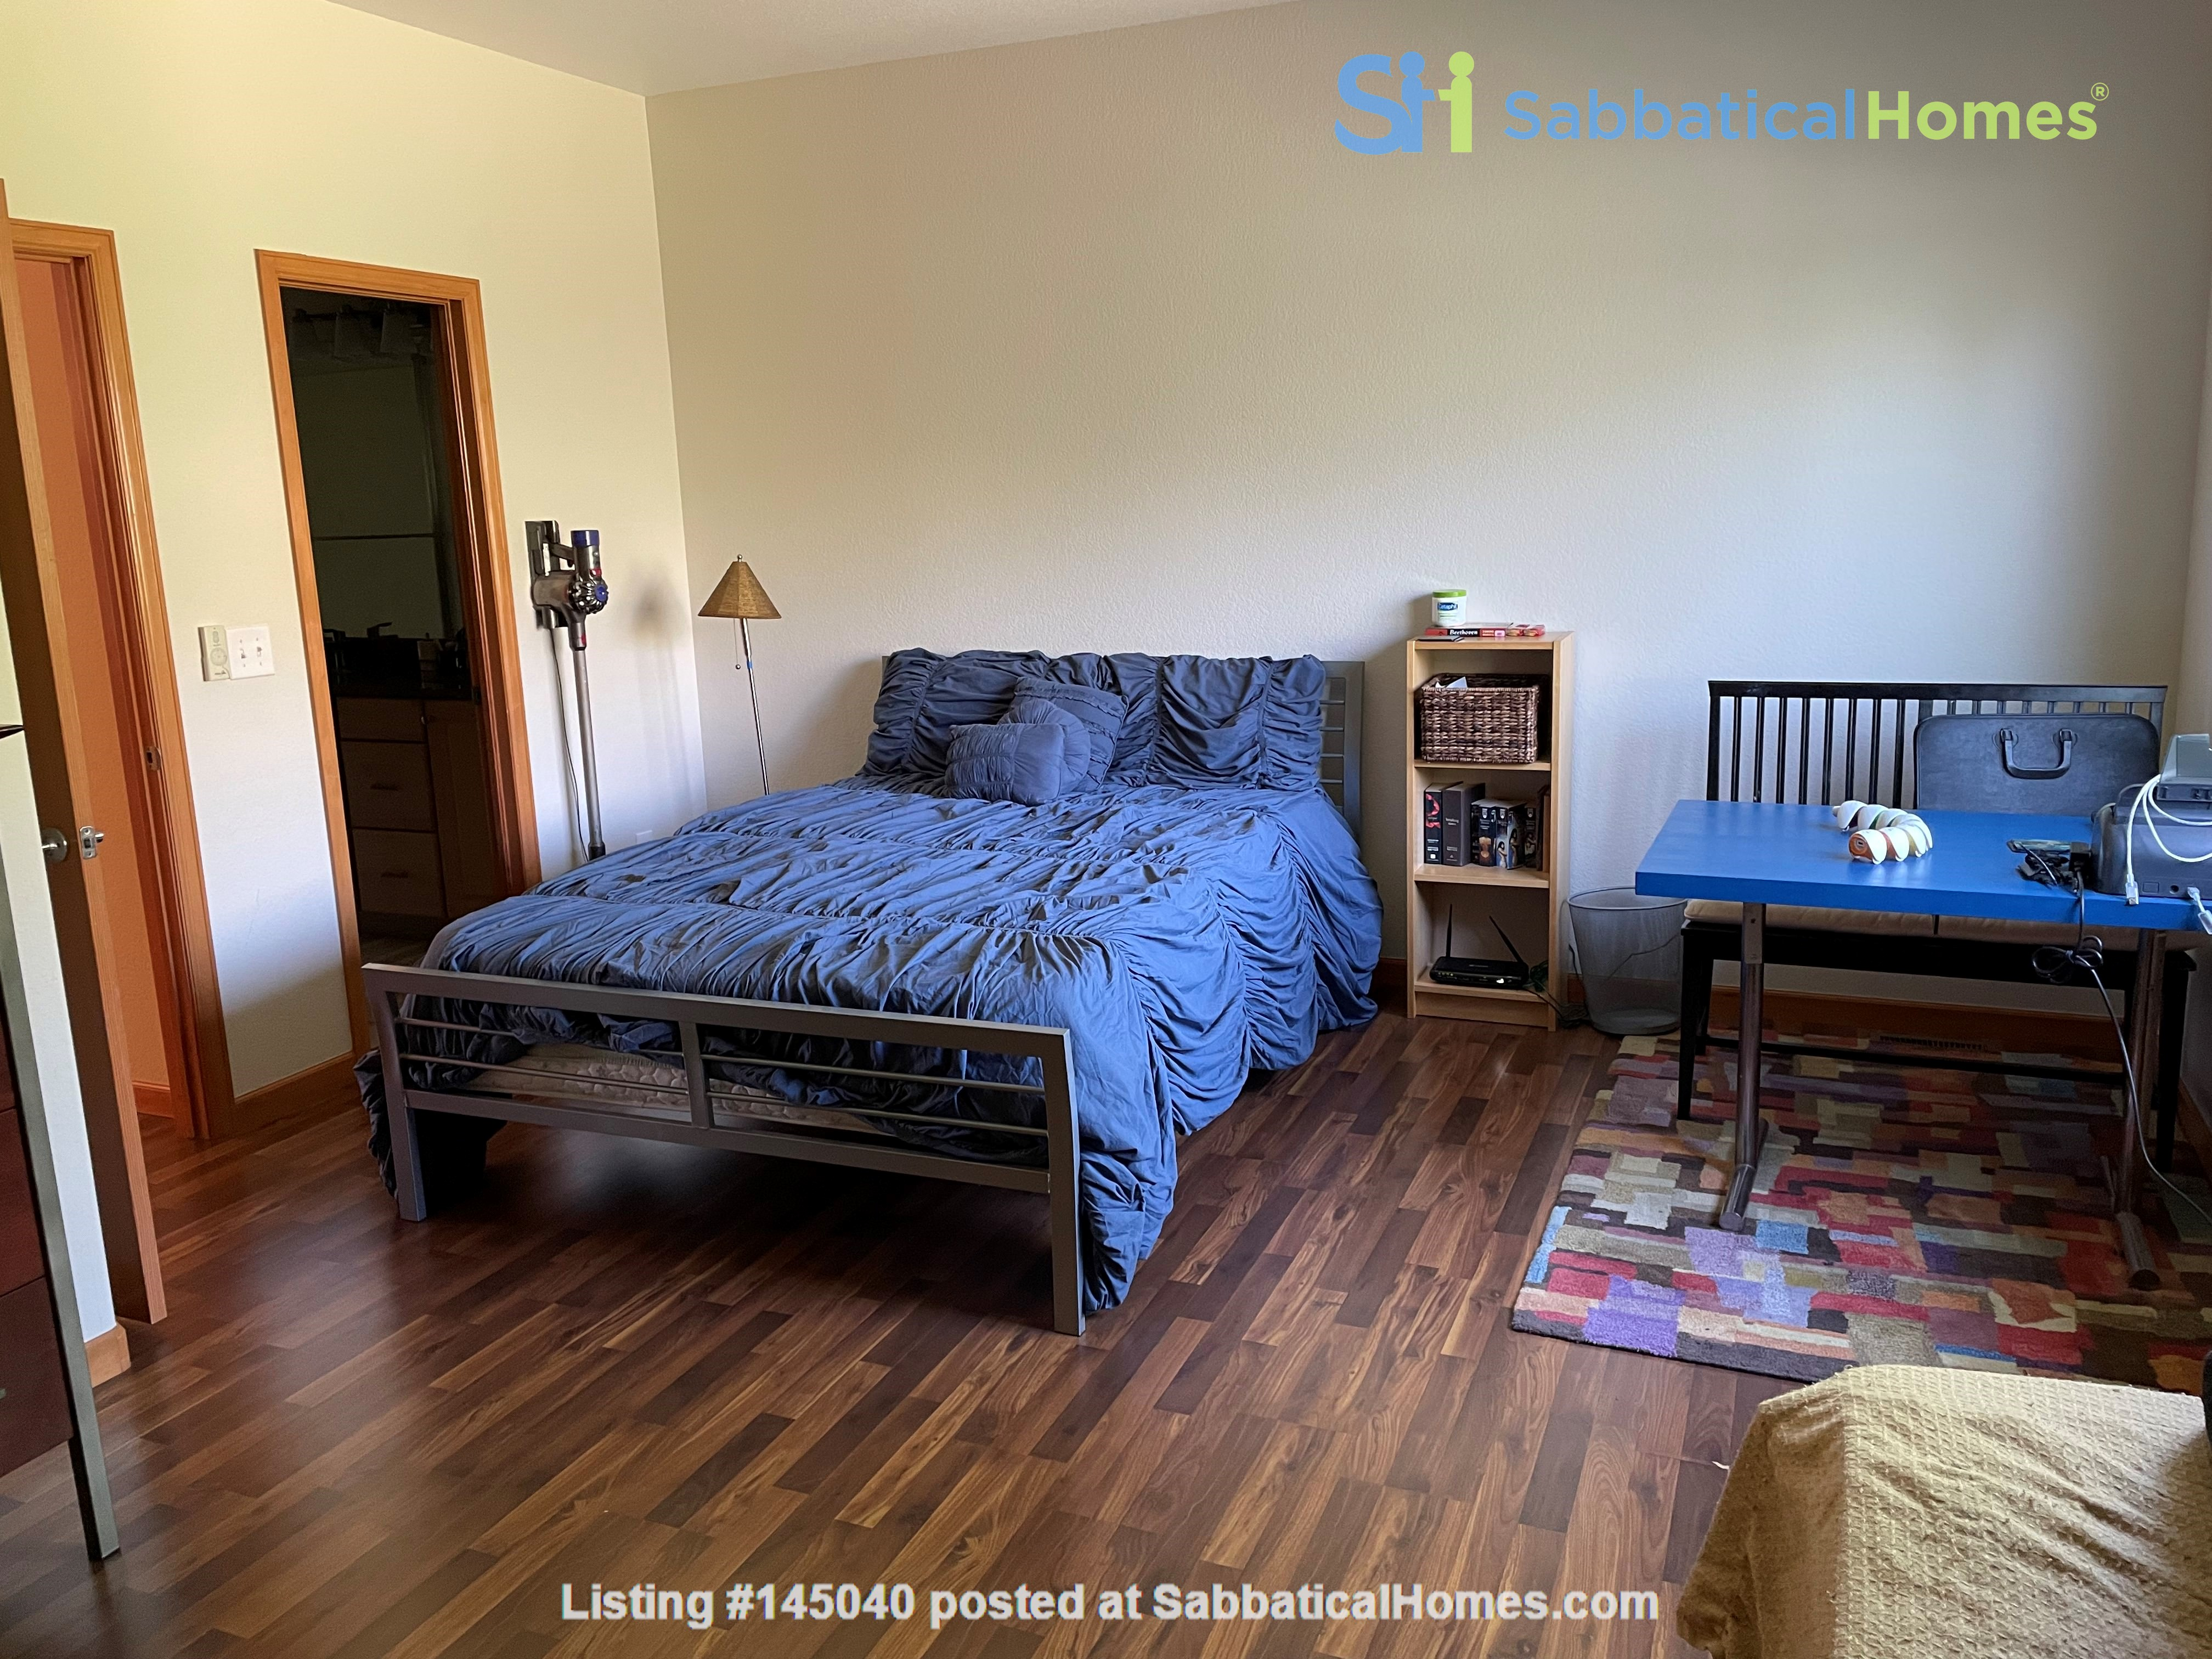 Hiking and biking paradise in beautiful Golden, Colorado - Spring 2022 swap Home Exchange in Golden 2